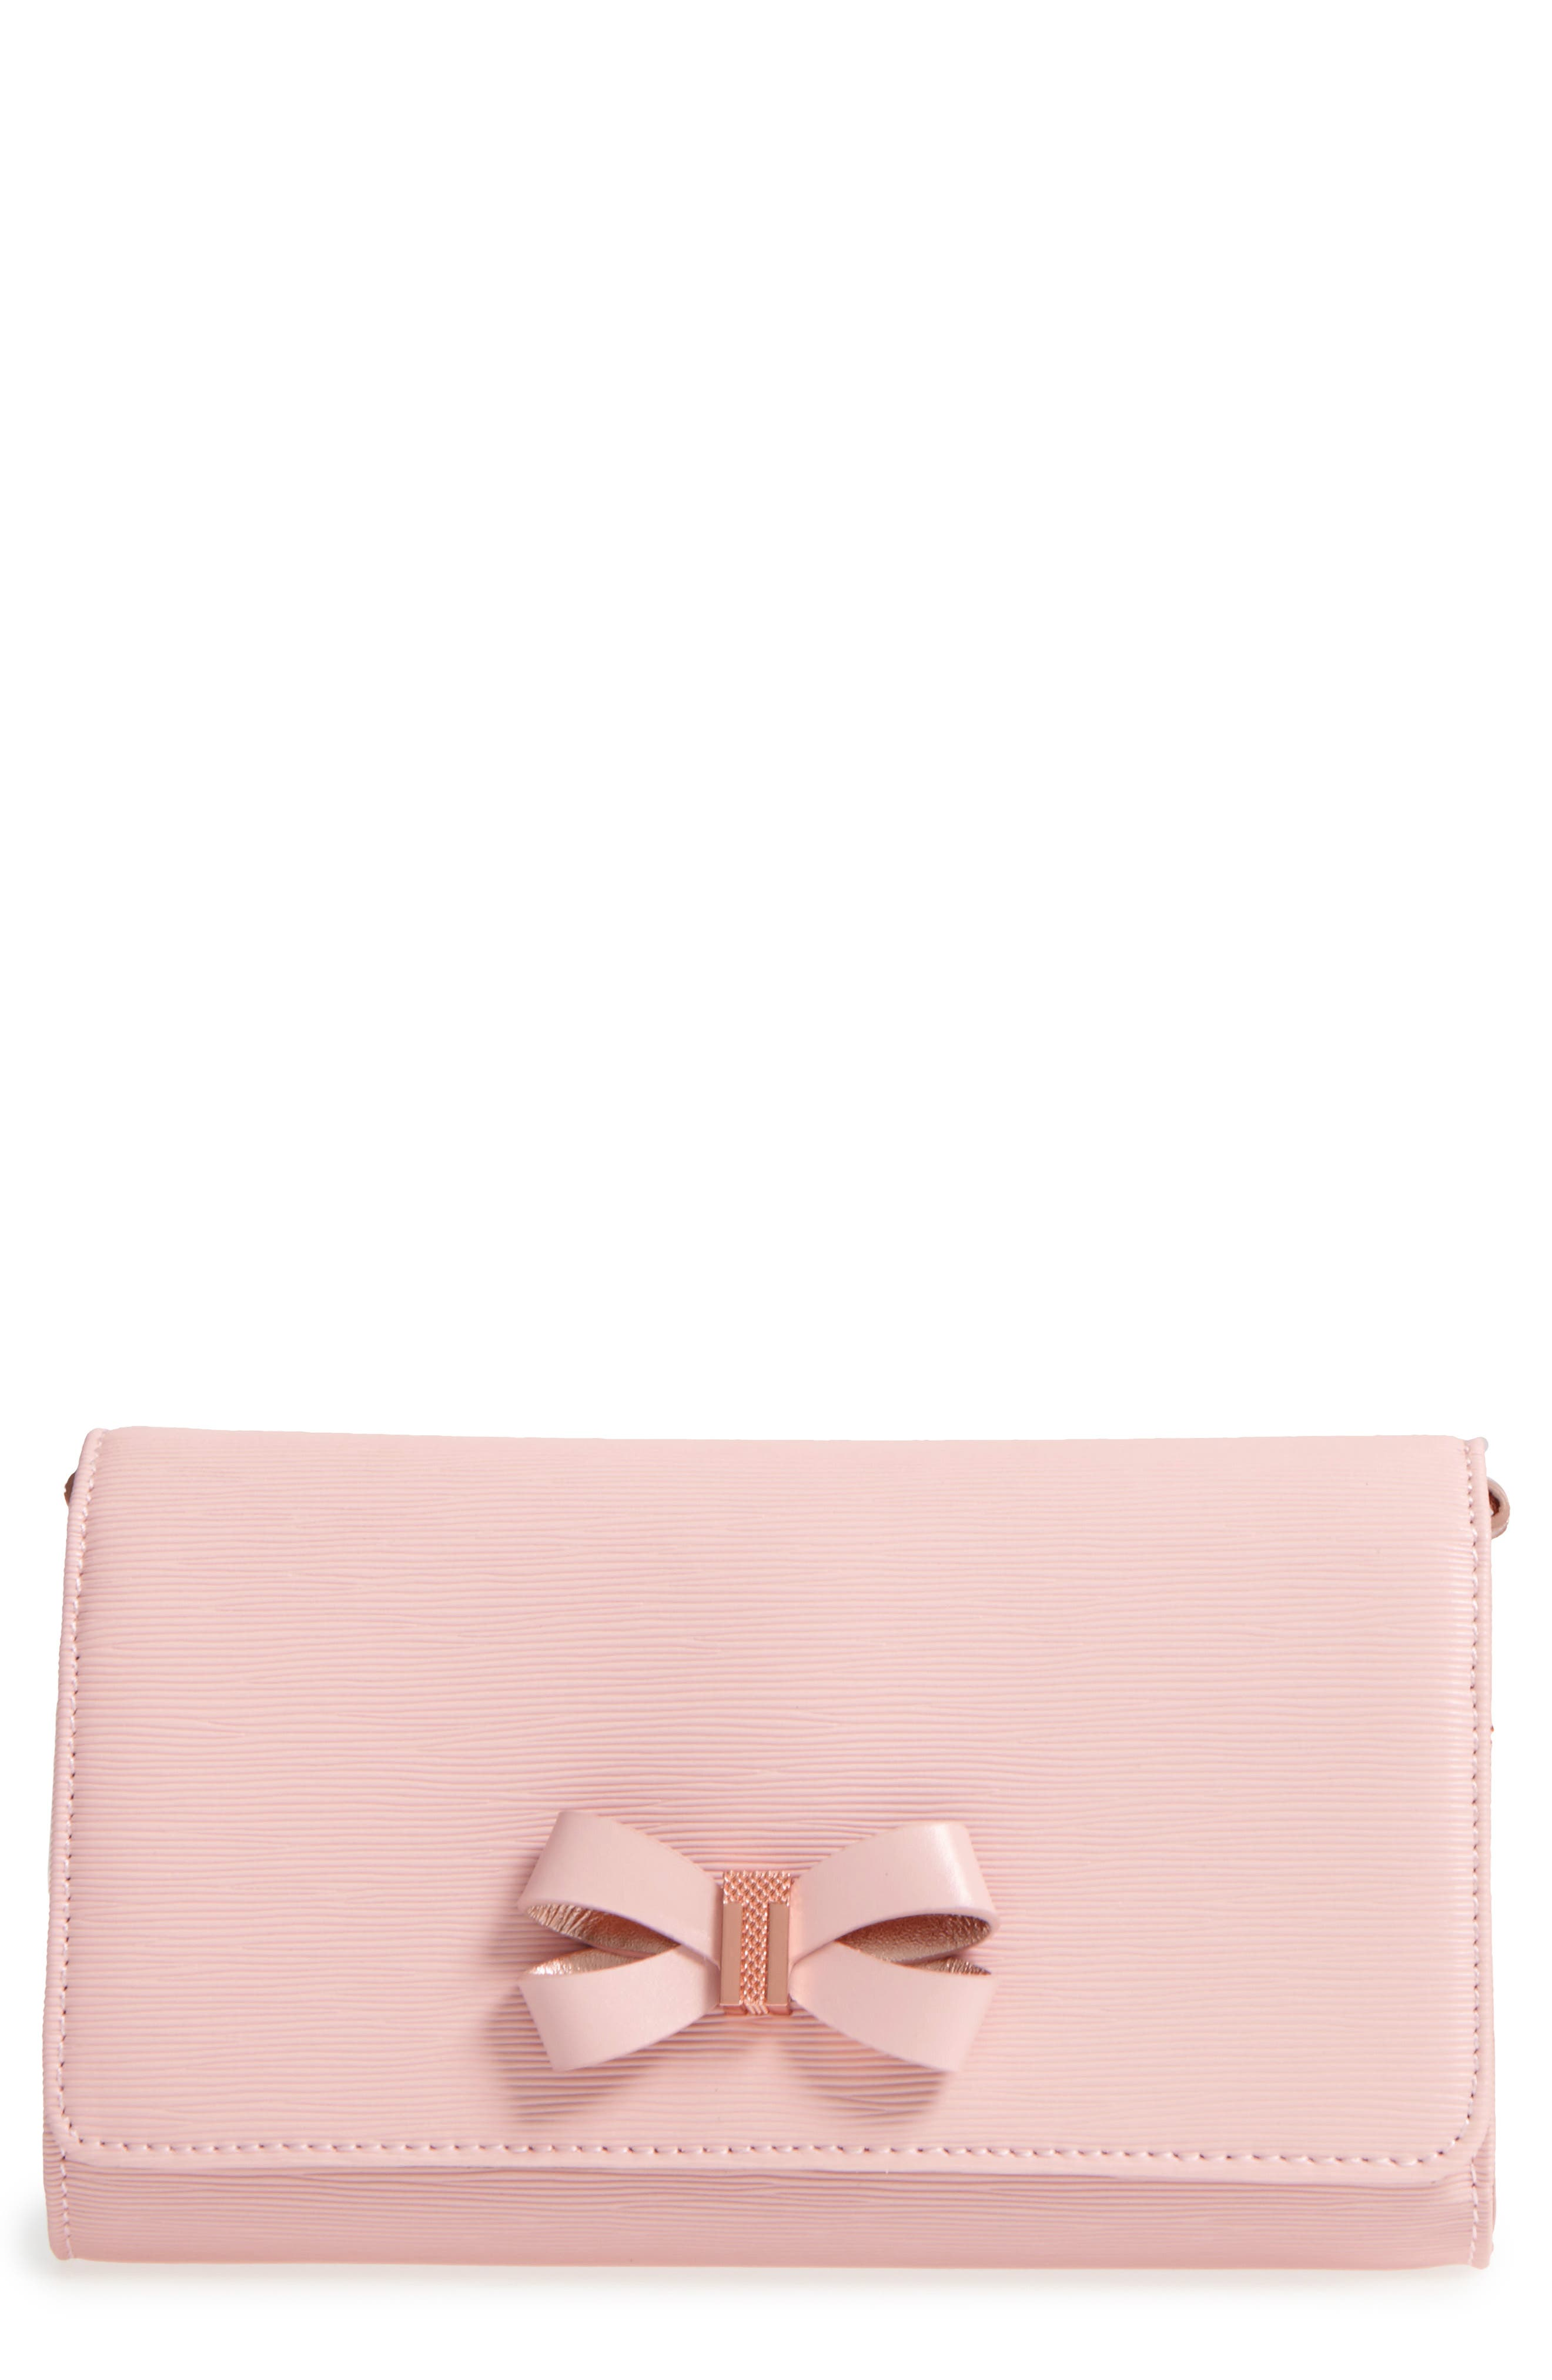 Melisia Bow Leather Mantinee Wallet on a Chain,                         Main,                         color, Light Pink